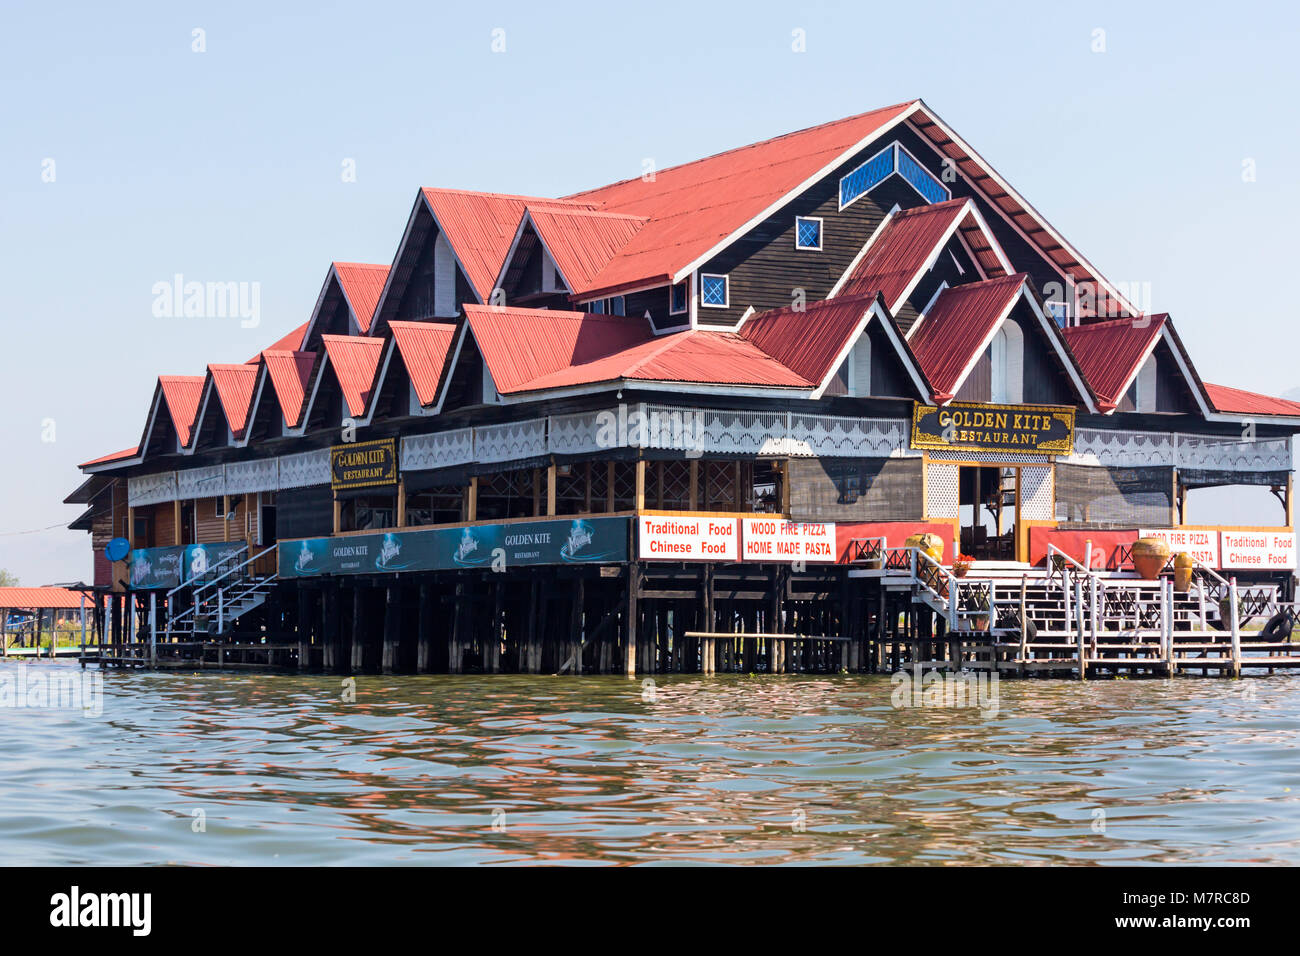 Golden Kite Restaurant at Inle Lake, Shan State, Myanmar (Burma), Asia in February - Stock Image